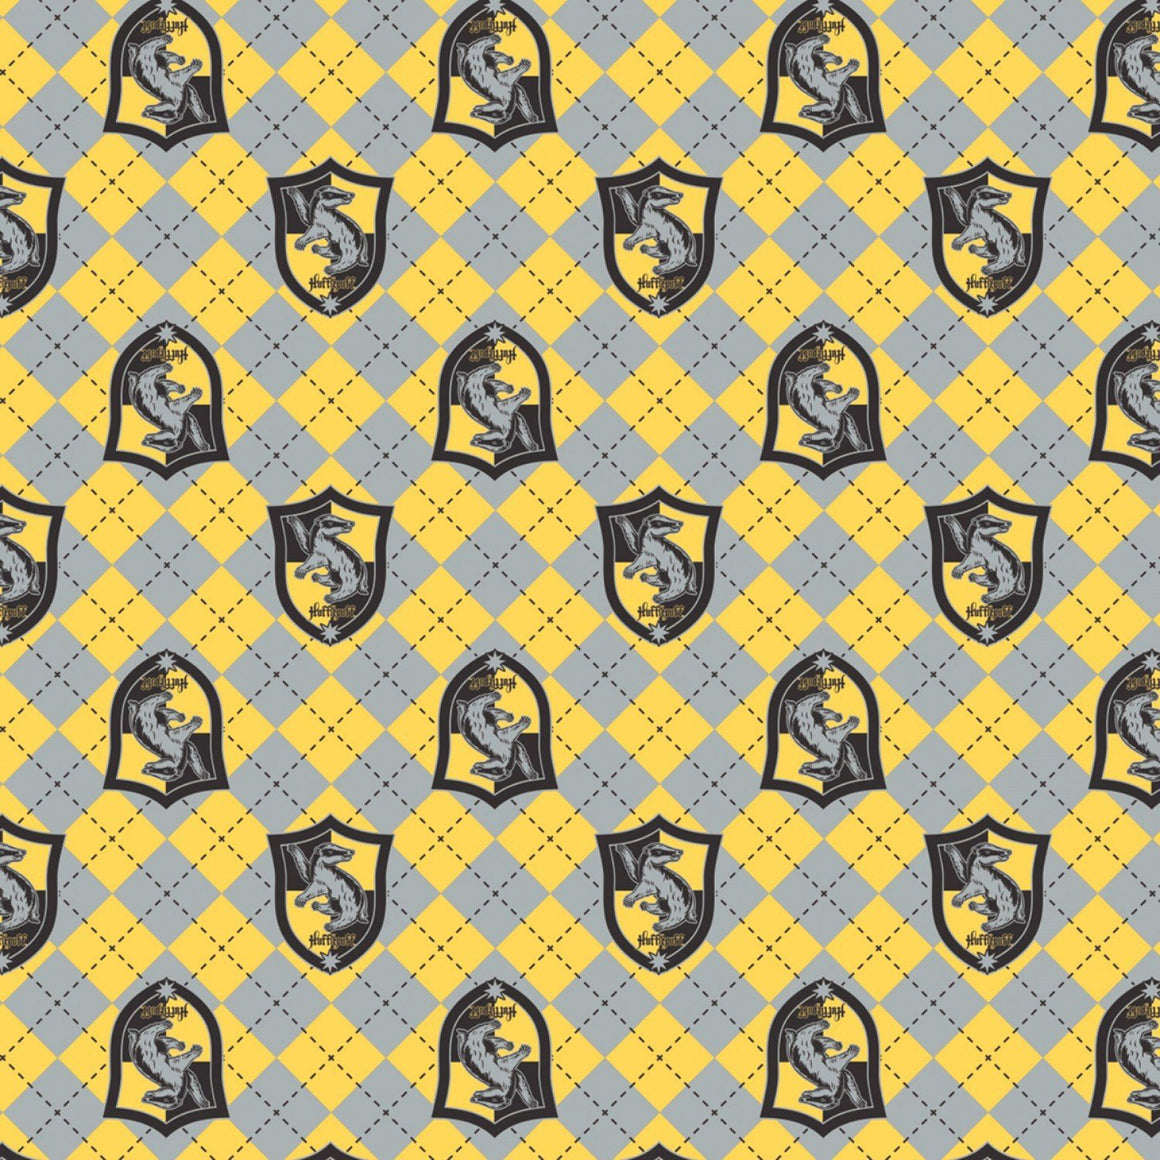 Yellow Grey and Black Hufflepuff Crest Harry Potter Argyle Flannel